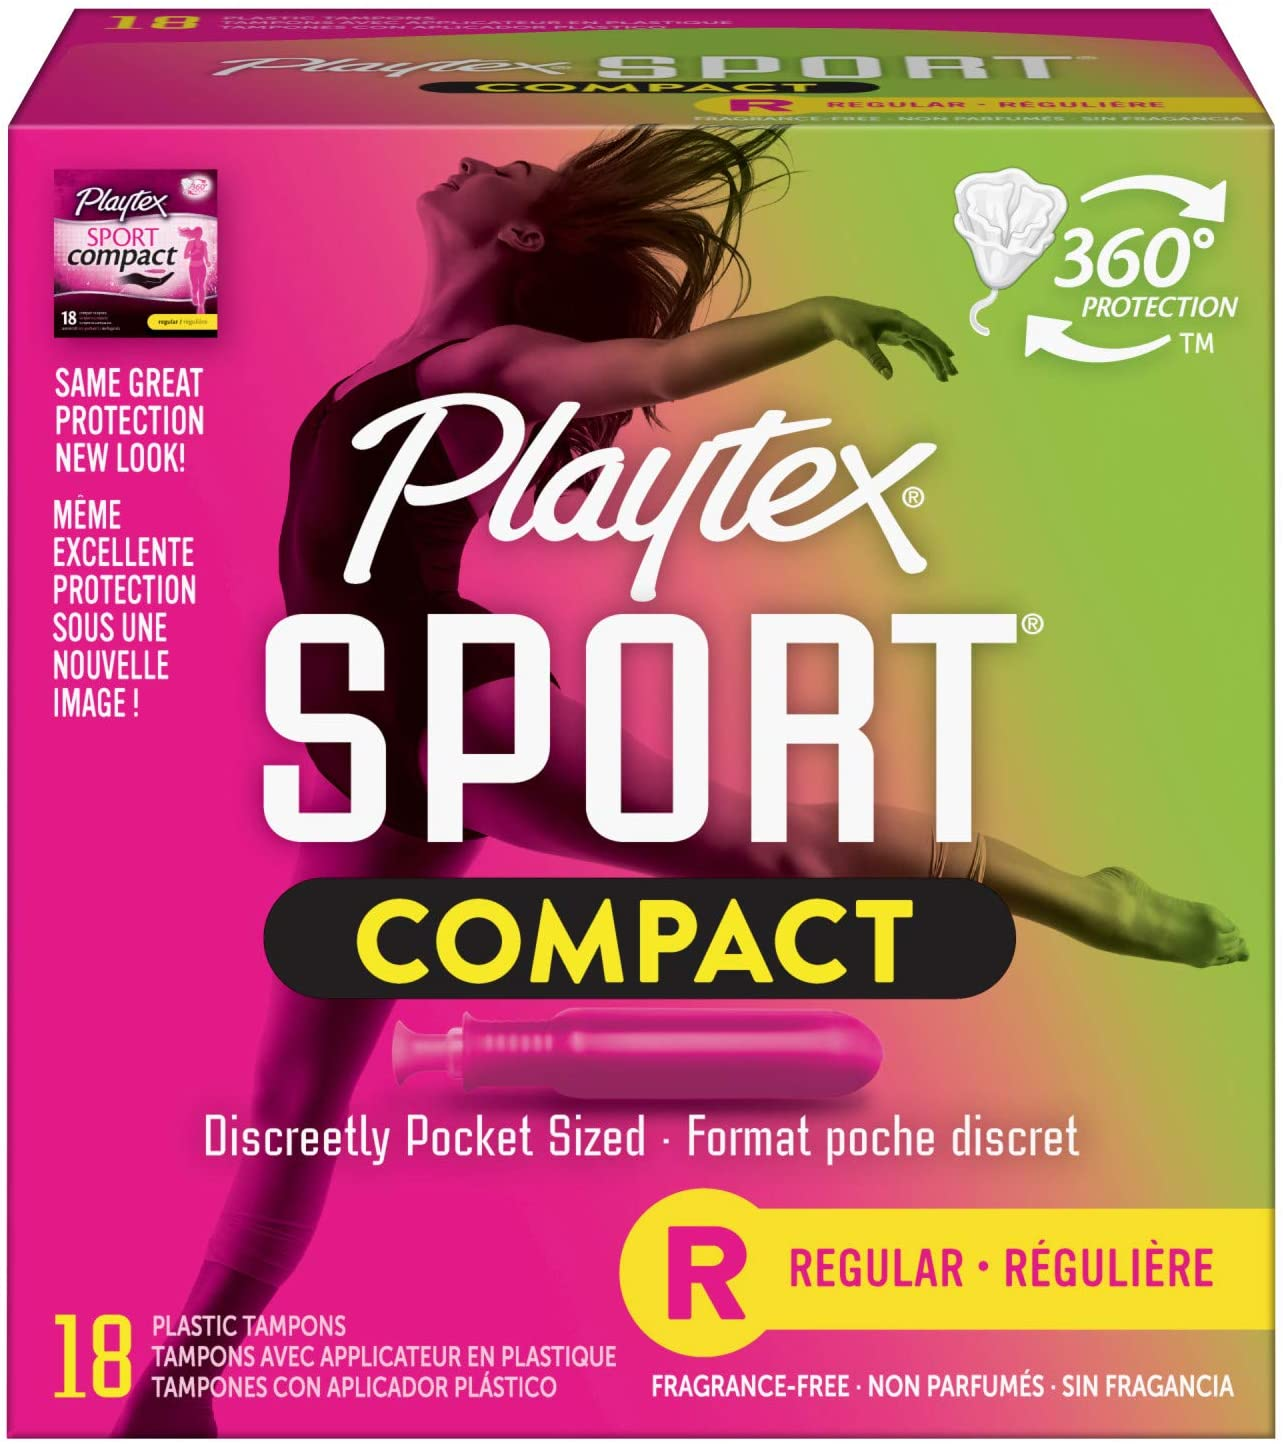 Playtex Sport safety Regular Absorbency Compact Tampons T Max 51% OFF with Flex-Fit